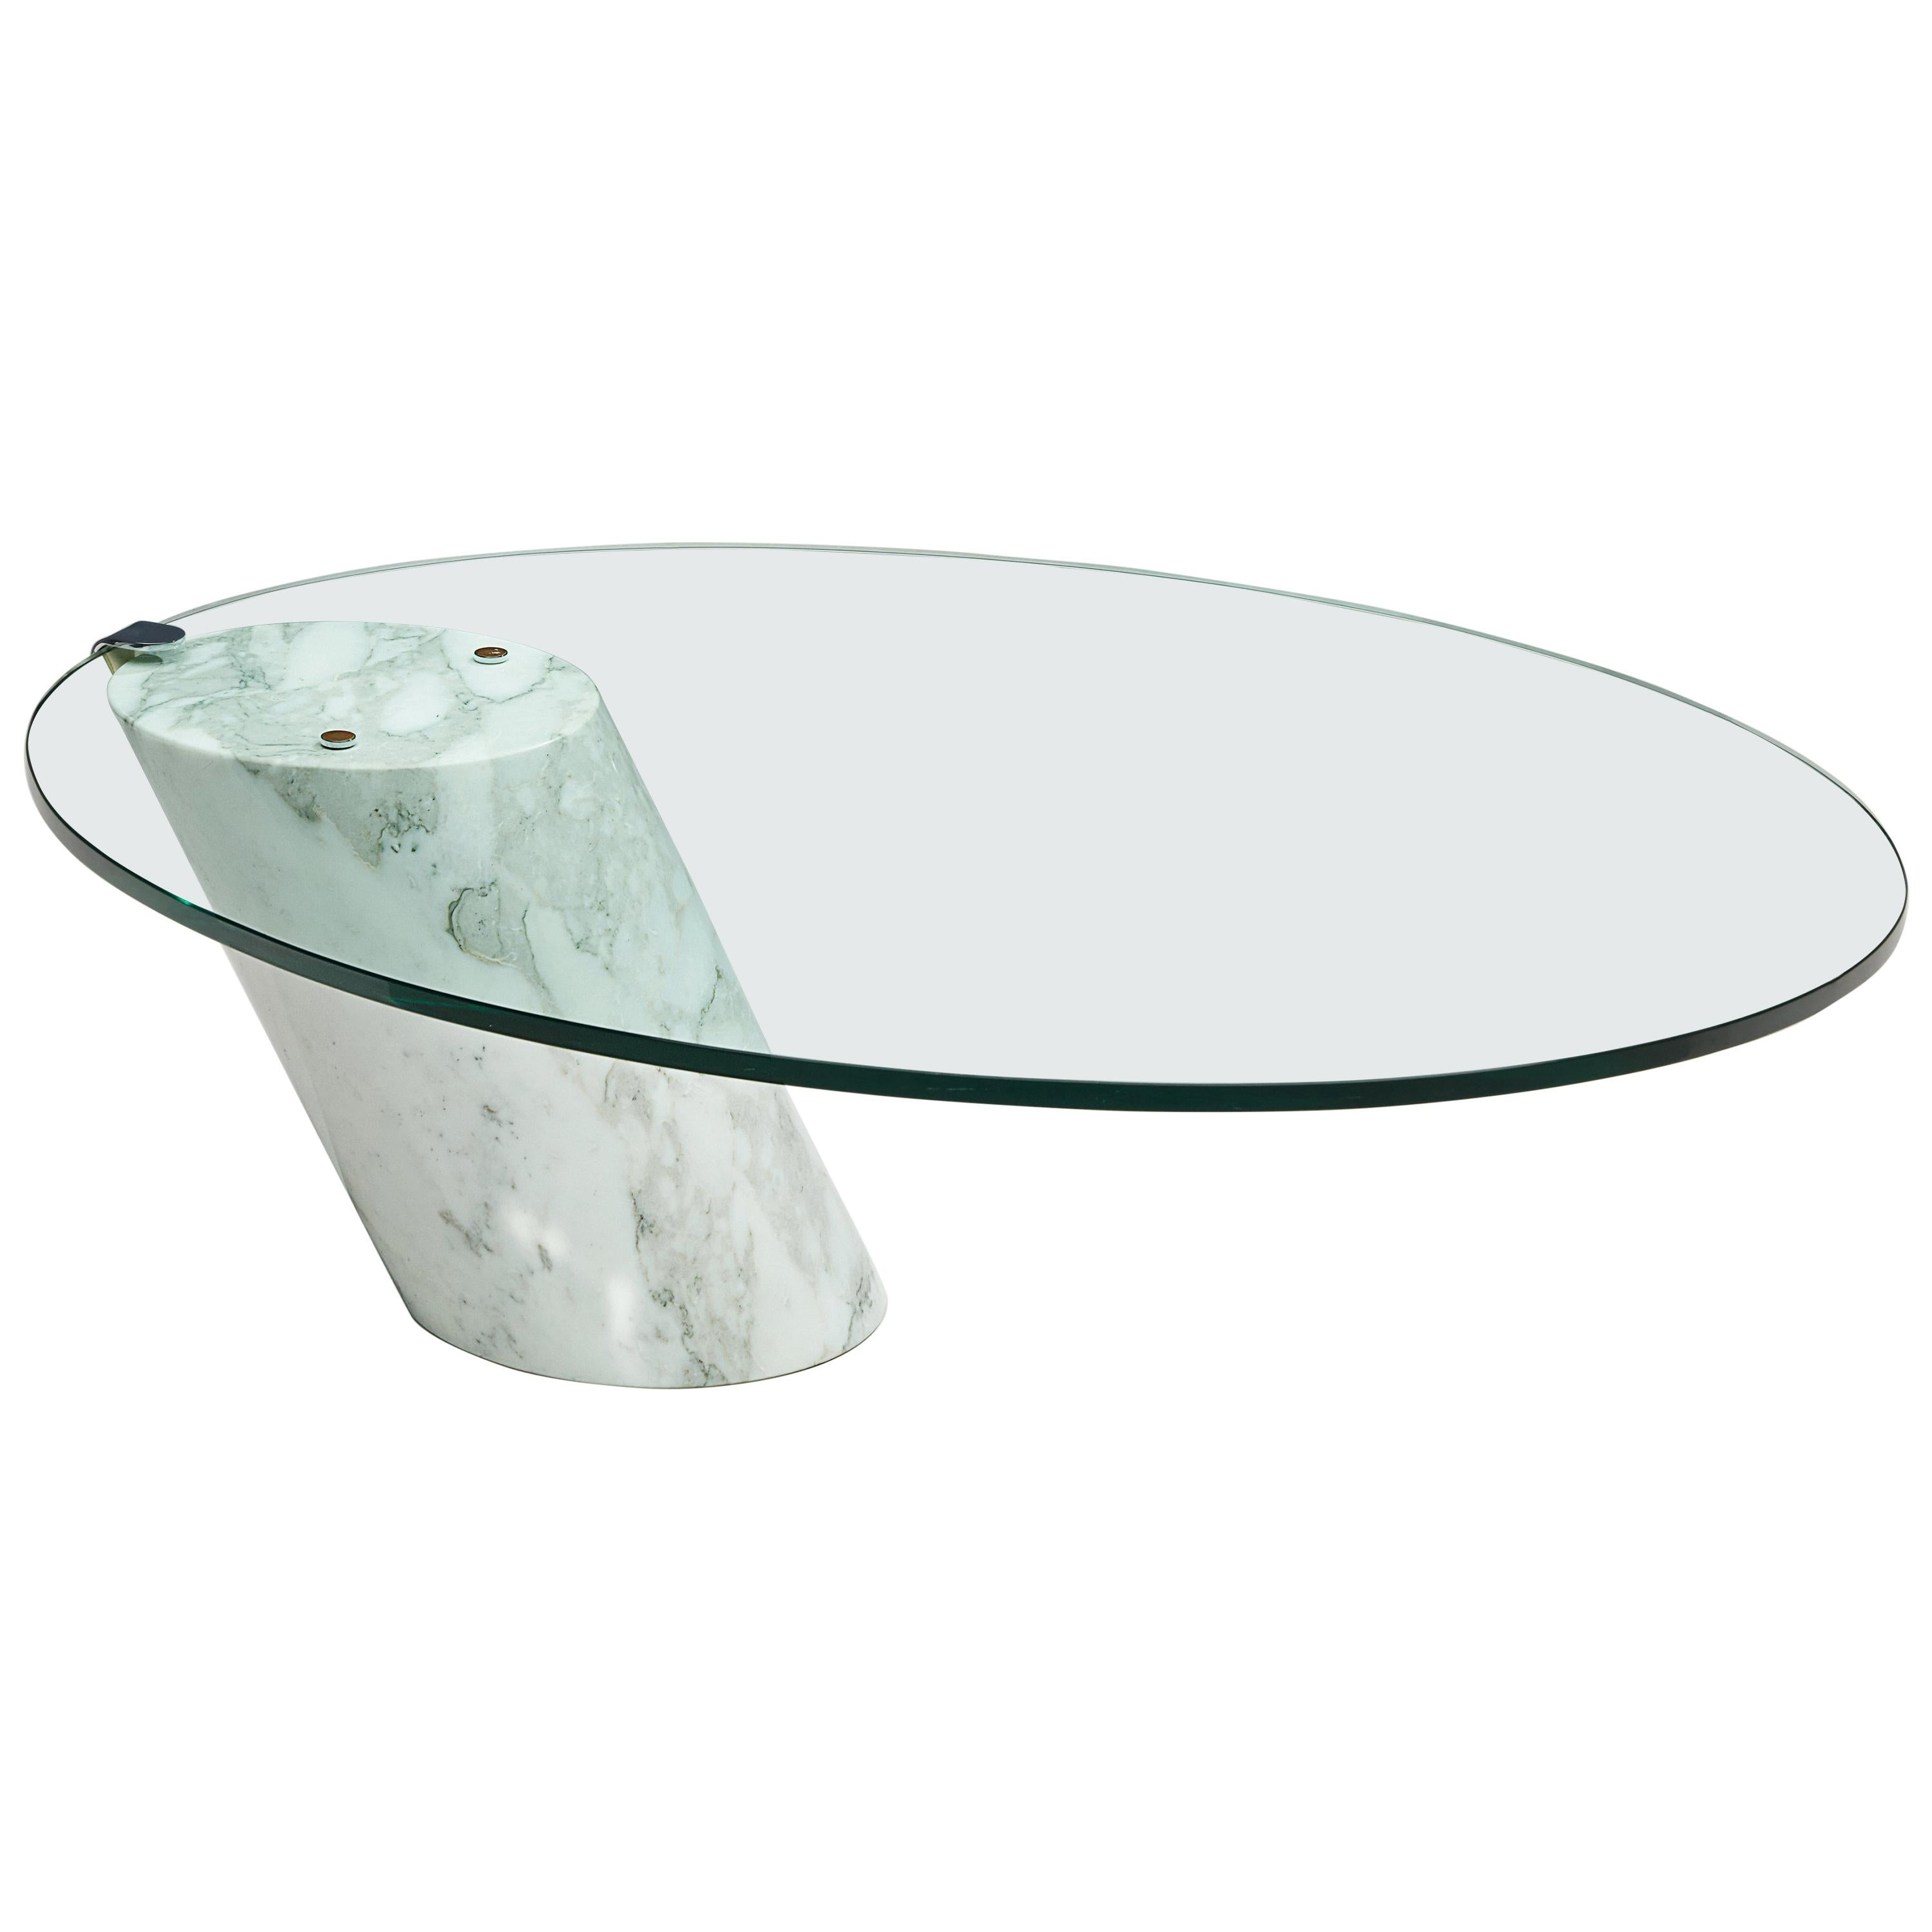 Oval Coffee Table in Carrara Marble and Glass